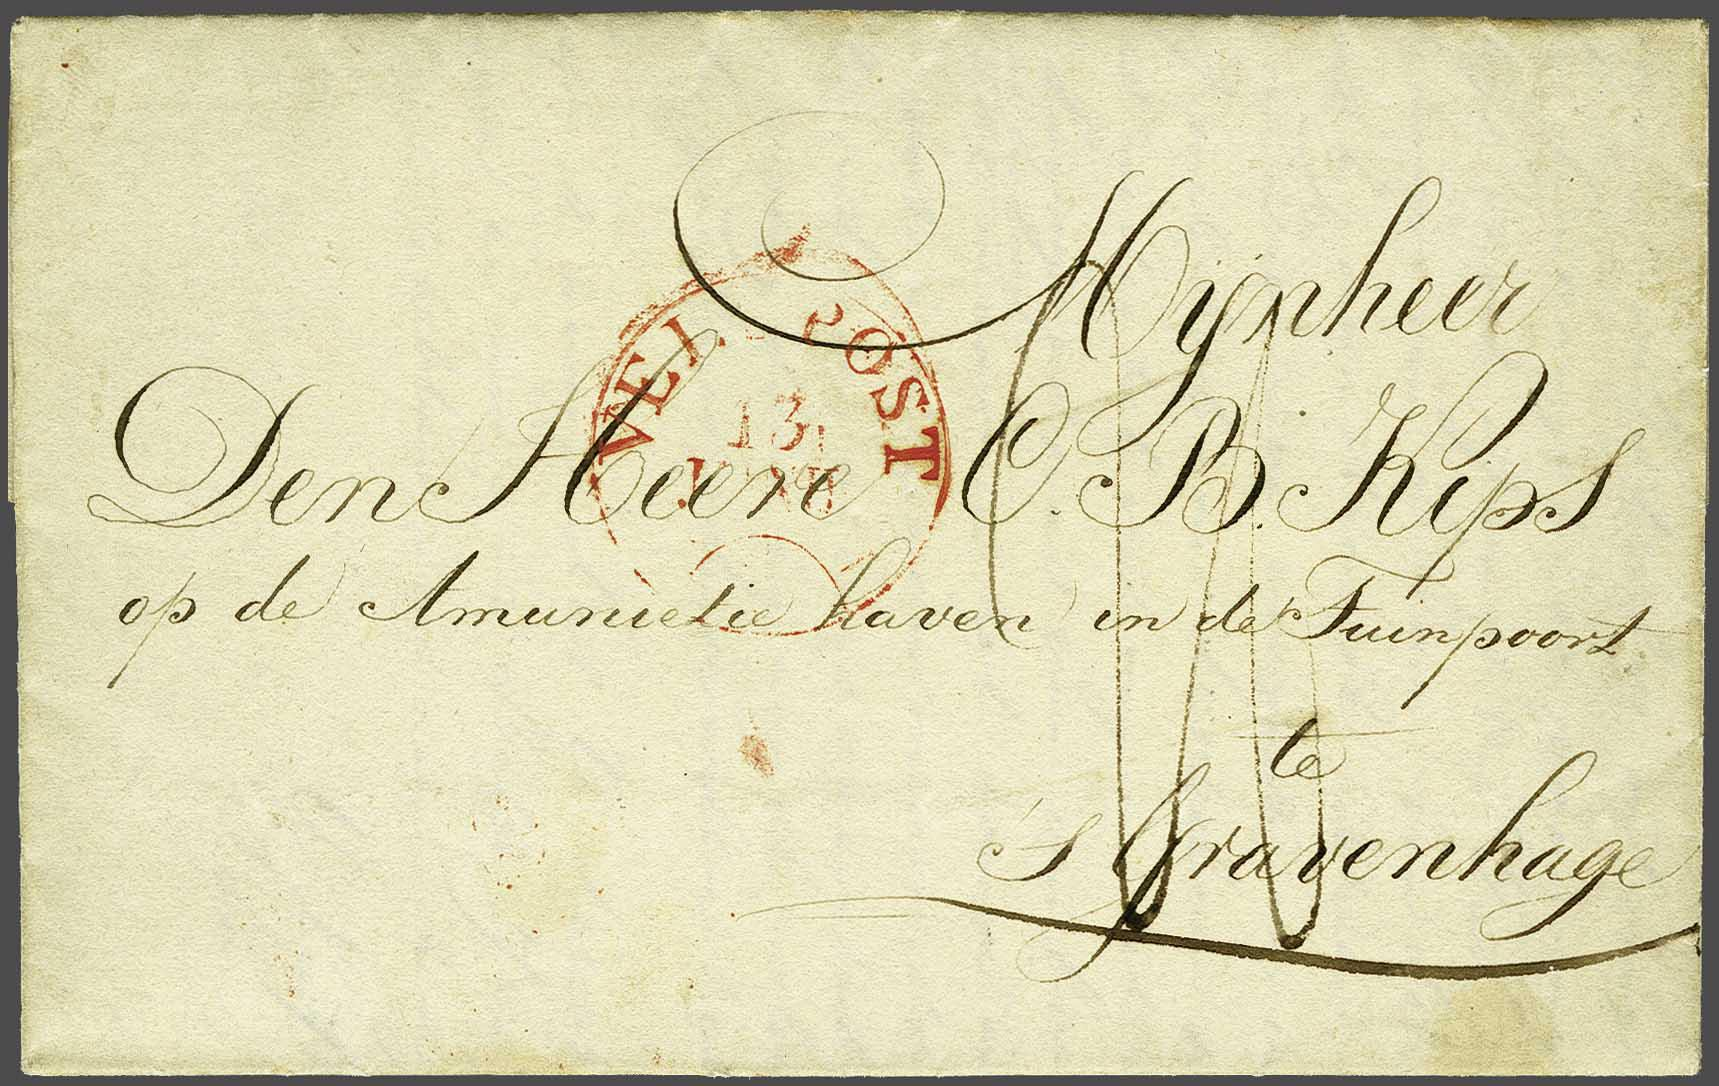 Lot 1707 - Netherlands and former colonies Netherlands -  Corinphila Veilingen Auction 245-246 Day 3 - Netherlands and former colonies - Single lots, Collections and lots, Boxes and literature